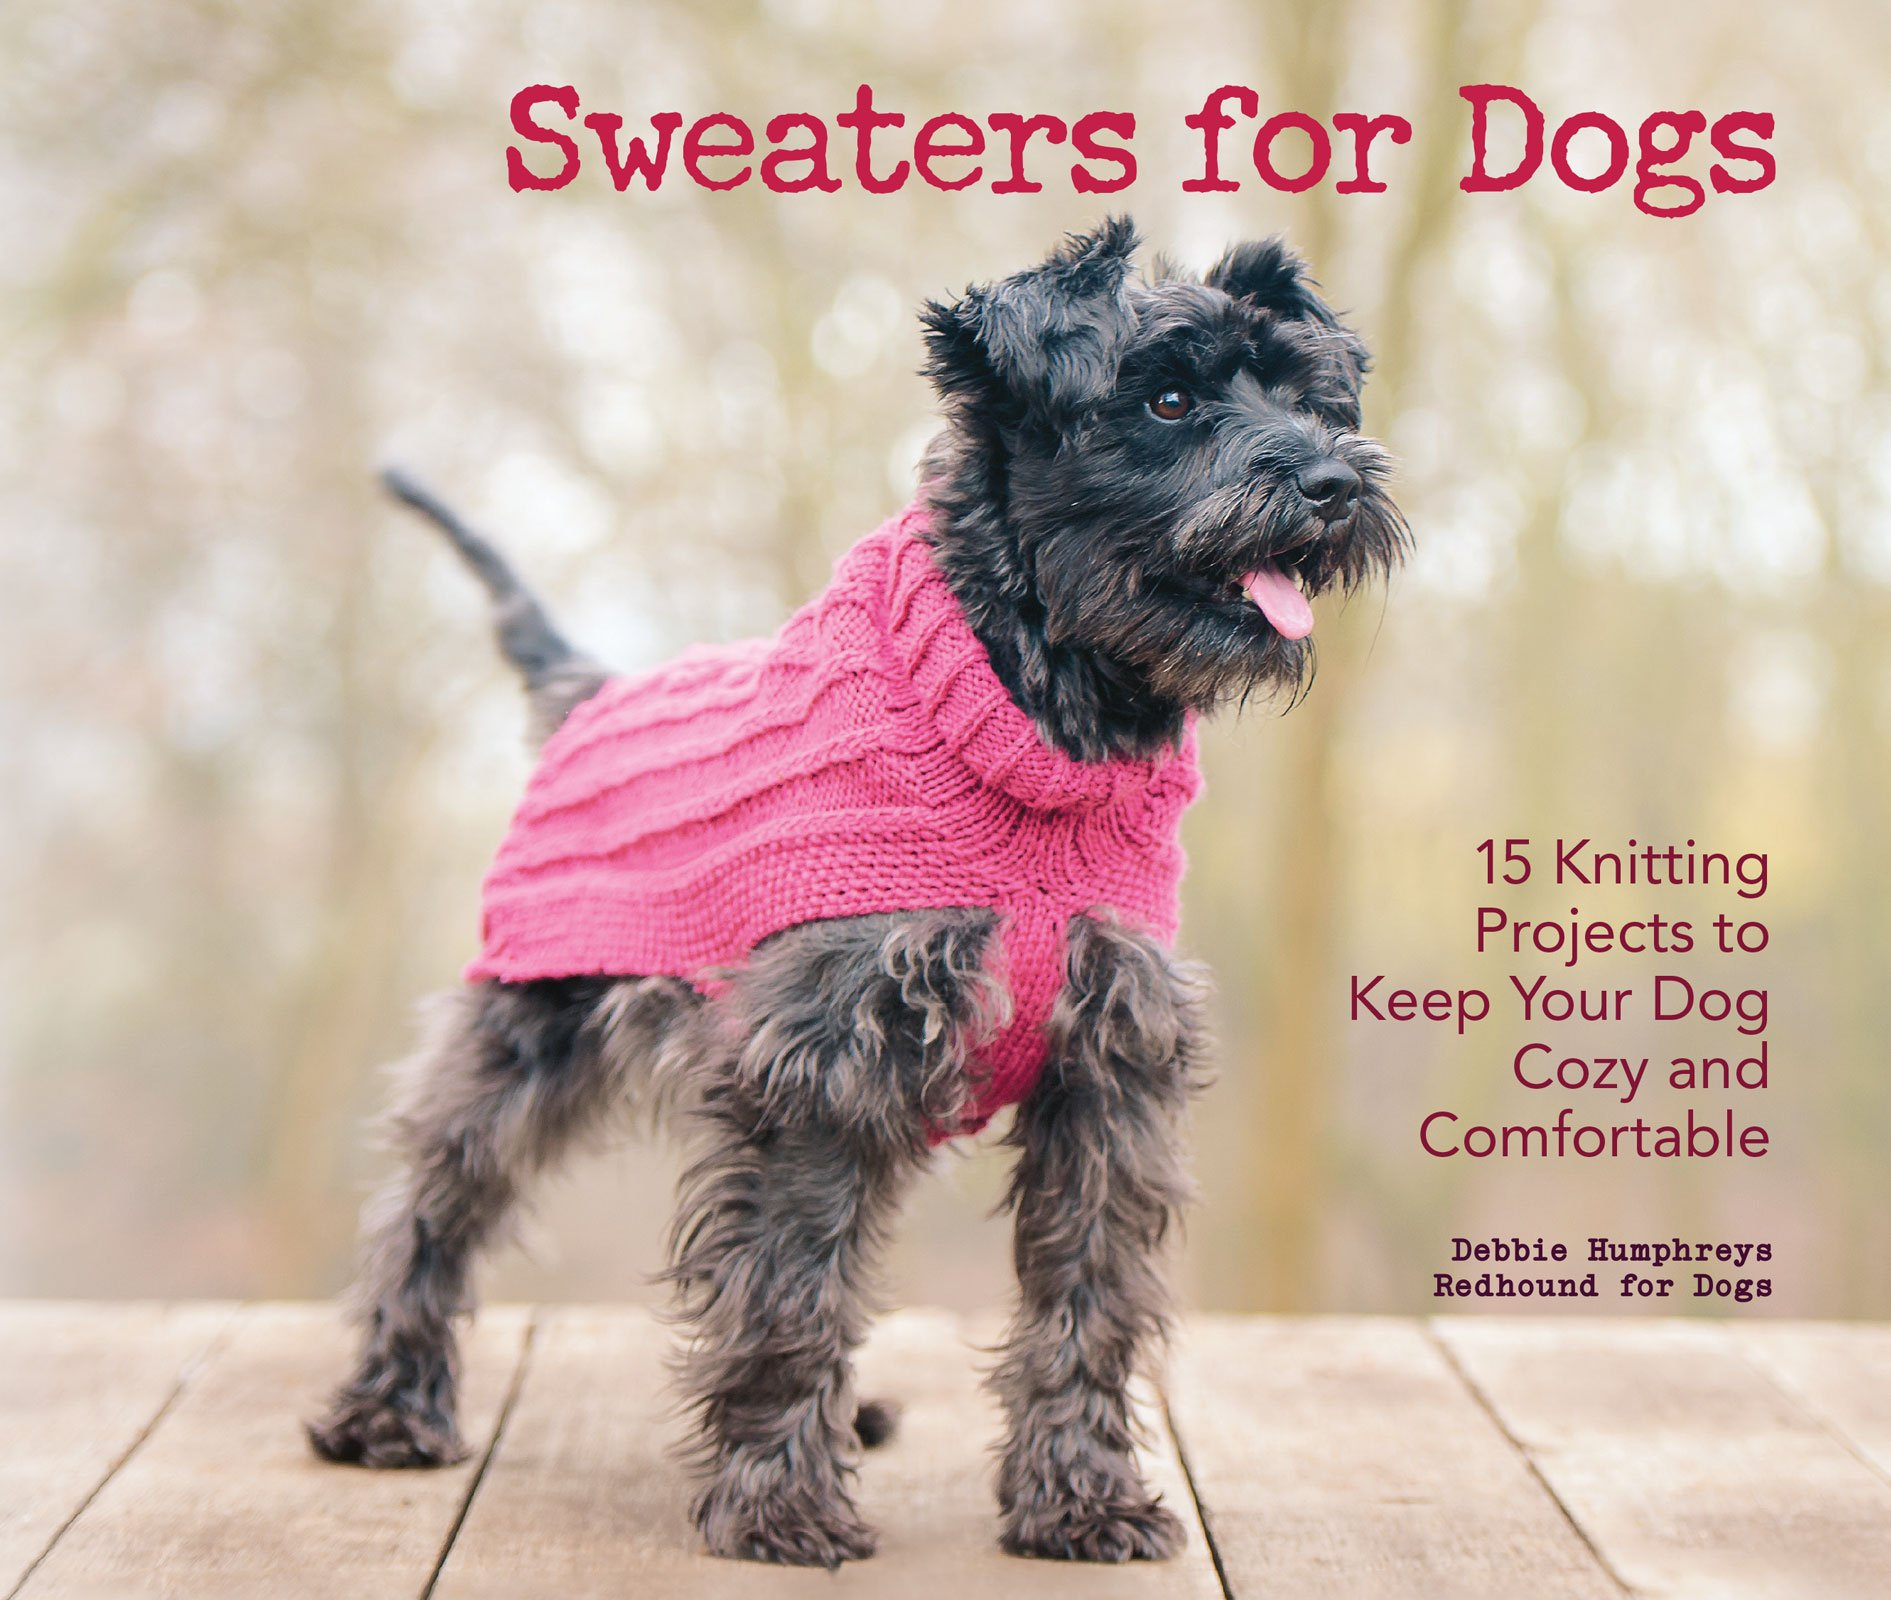 Sweaters for Dogs: 15 Knitting Projects to Keep Your Dog Cozy and Comfortable 1